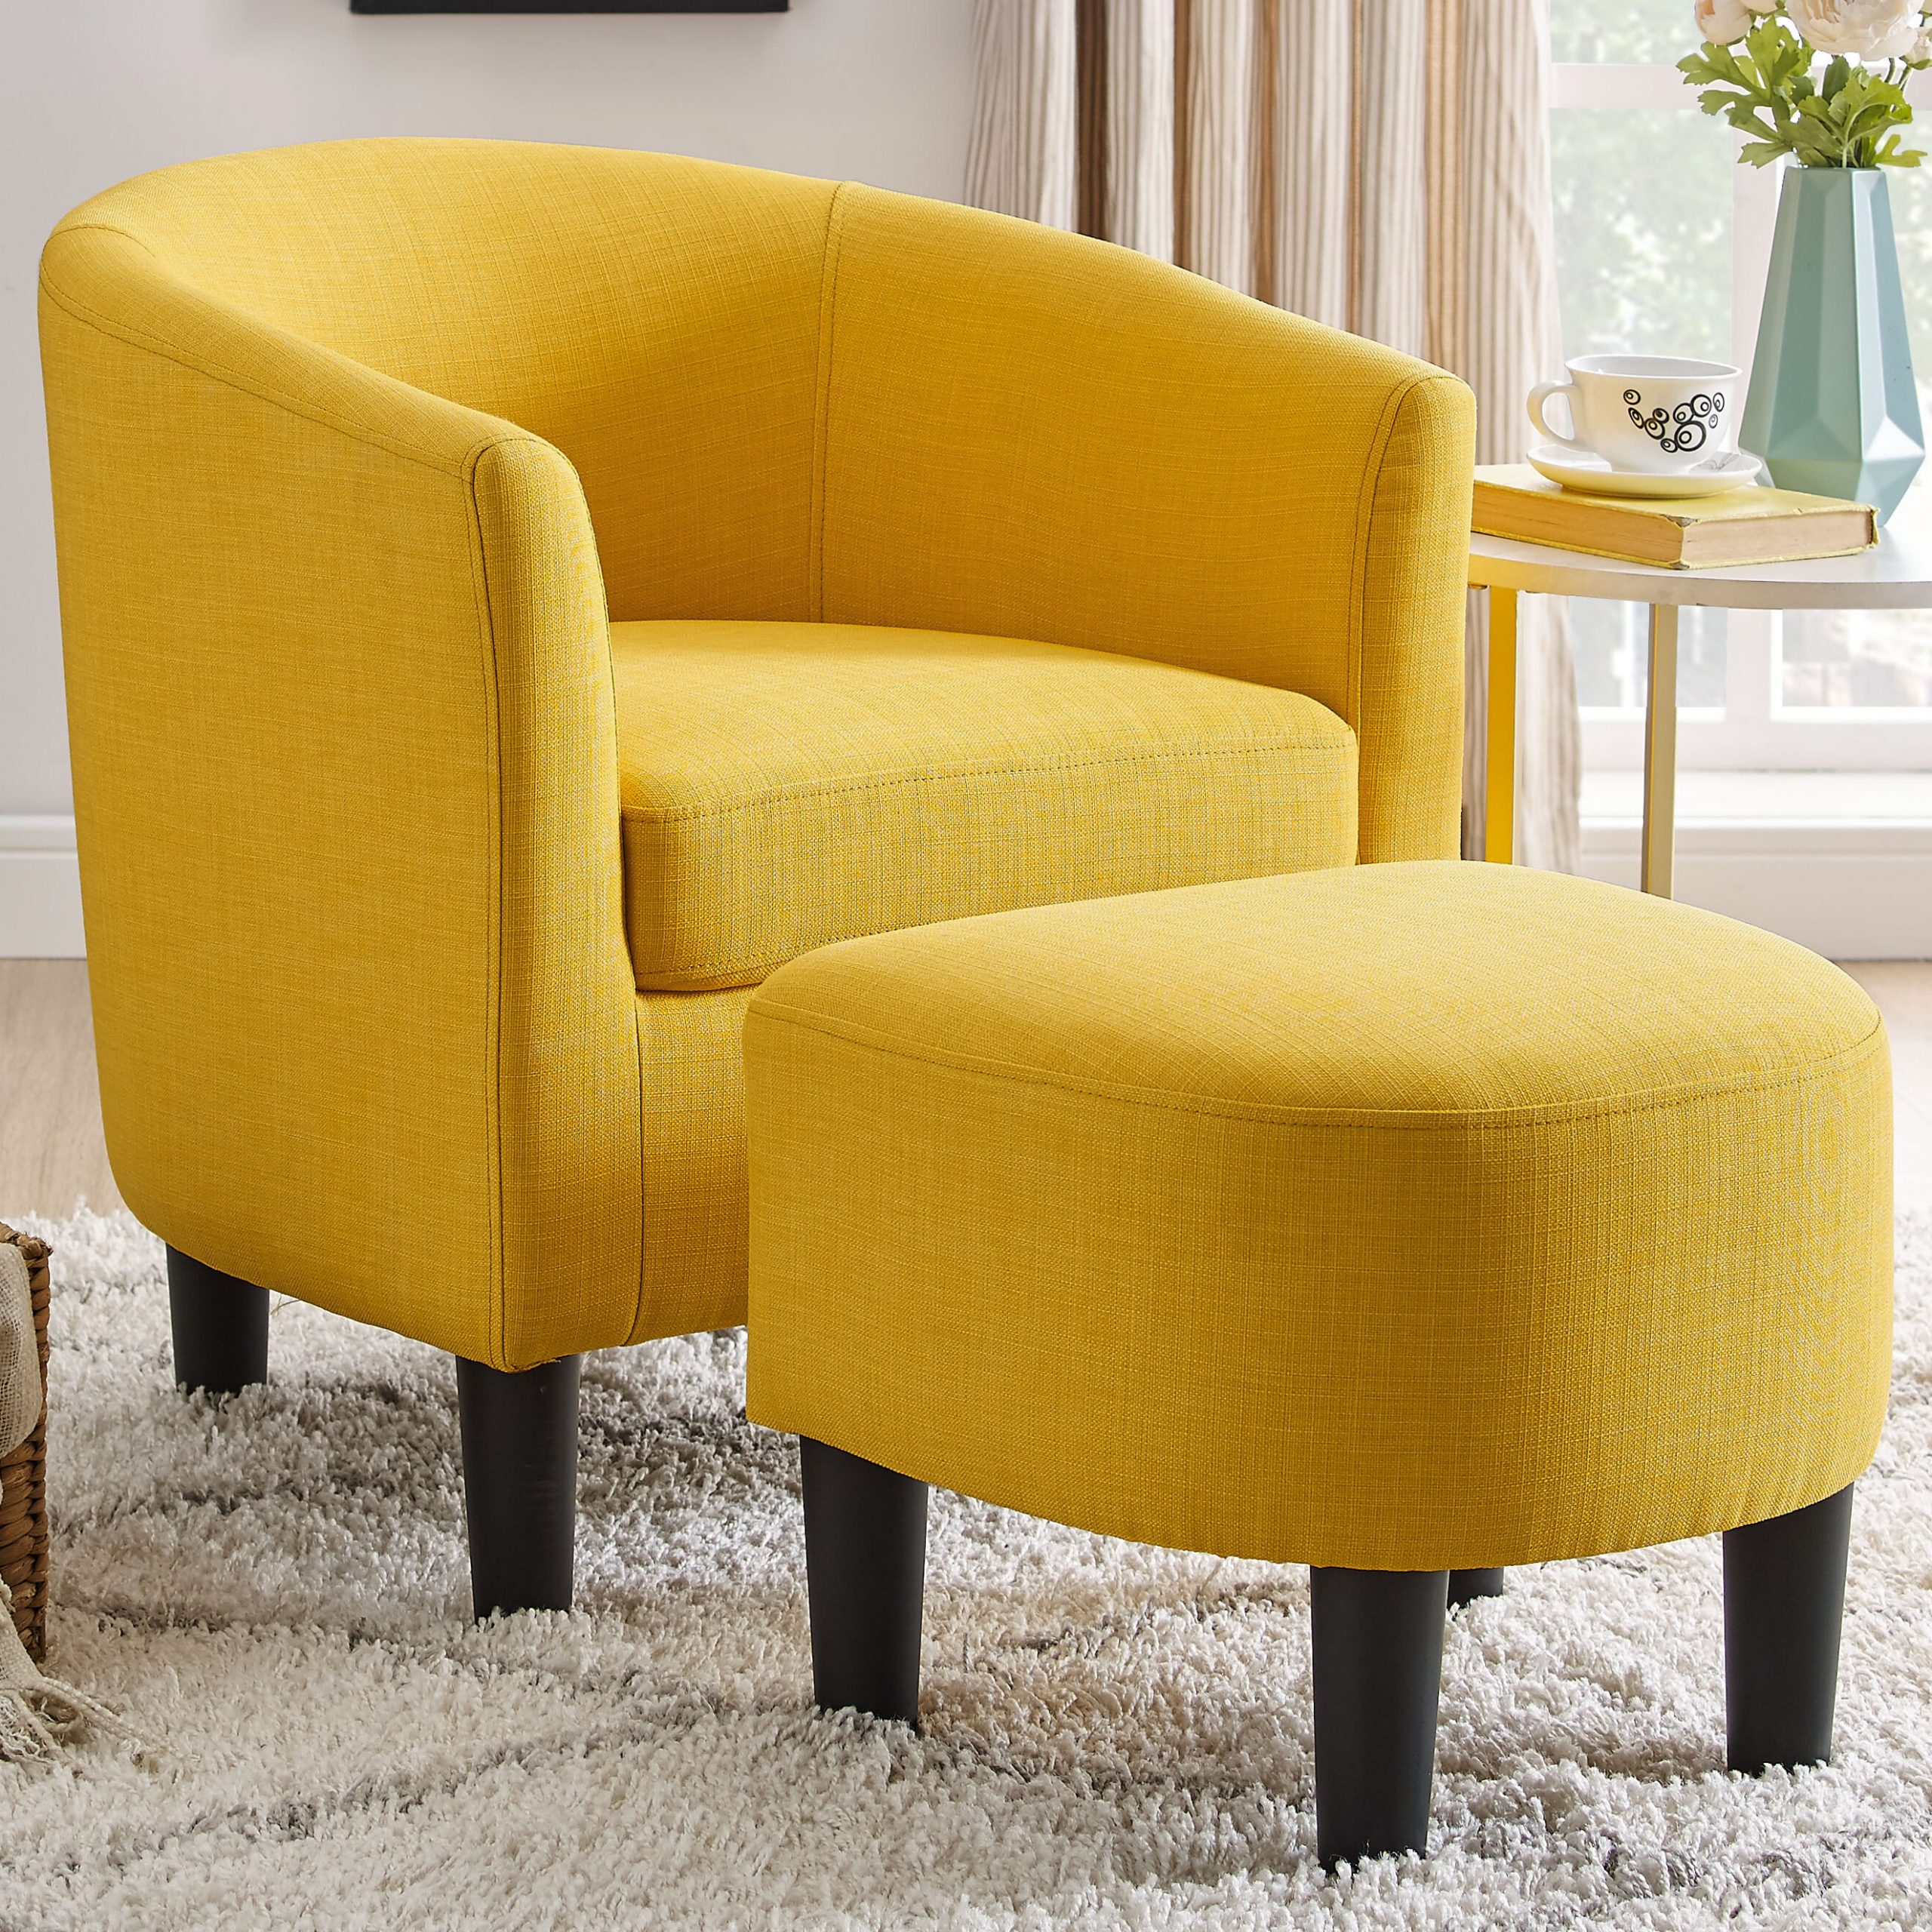 Barrel Yellow Accent Chairs You'Ll Love In 2021 | Wayfair With Regard To Lucea Faux Leather Barrel Chairs And Ottoman (View 7 of 15)